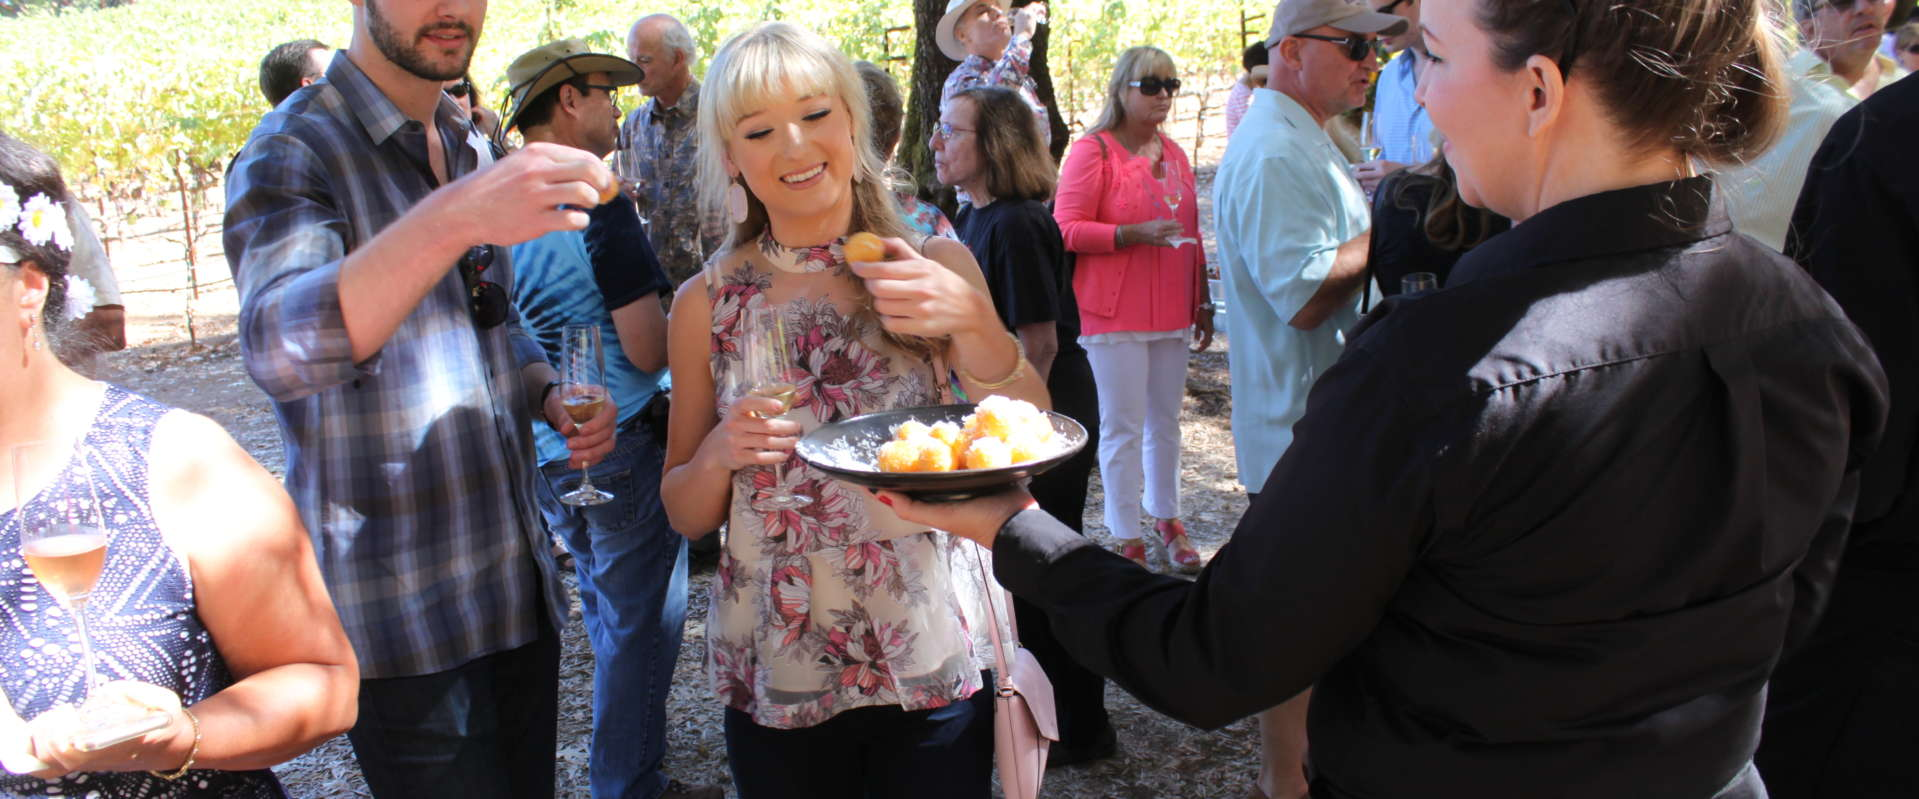 Guests enjoying food and sparkling wine in the redwood grove at a Schramsberg event